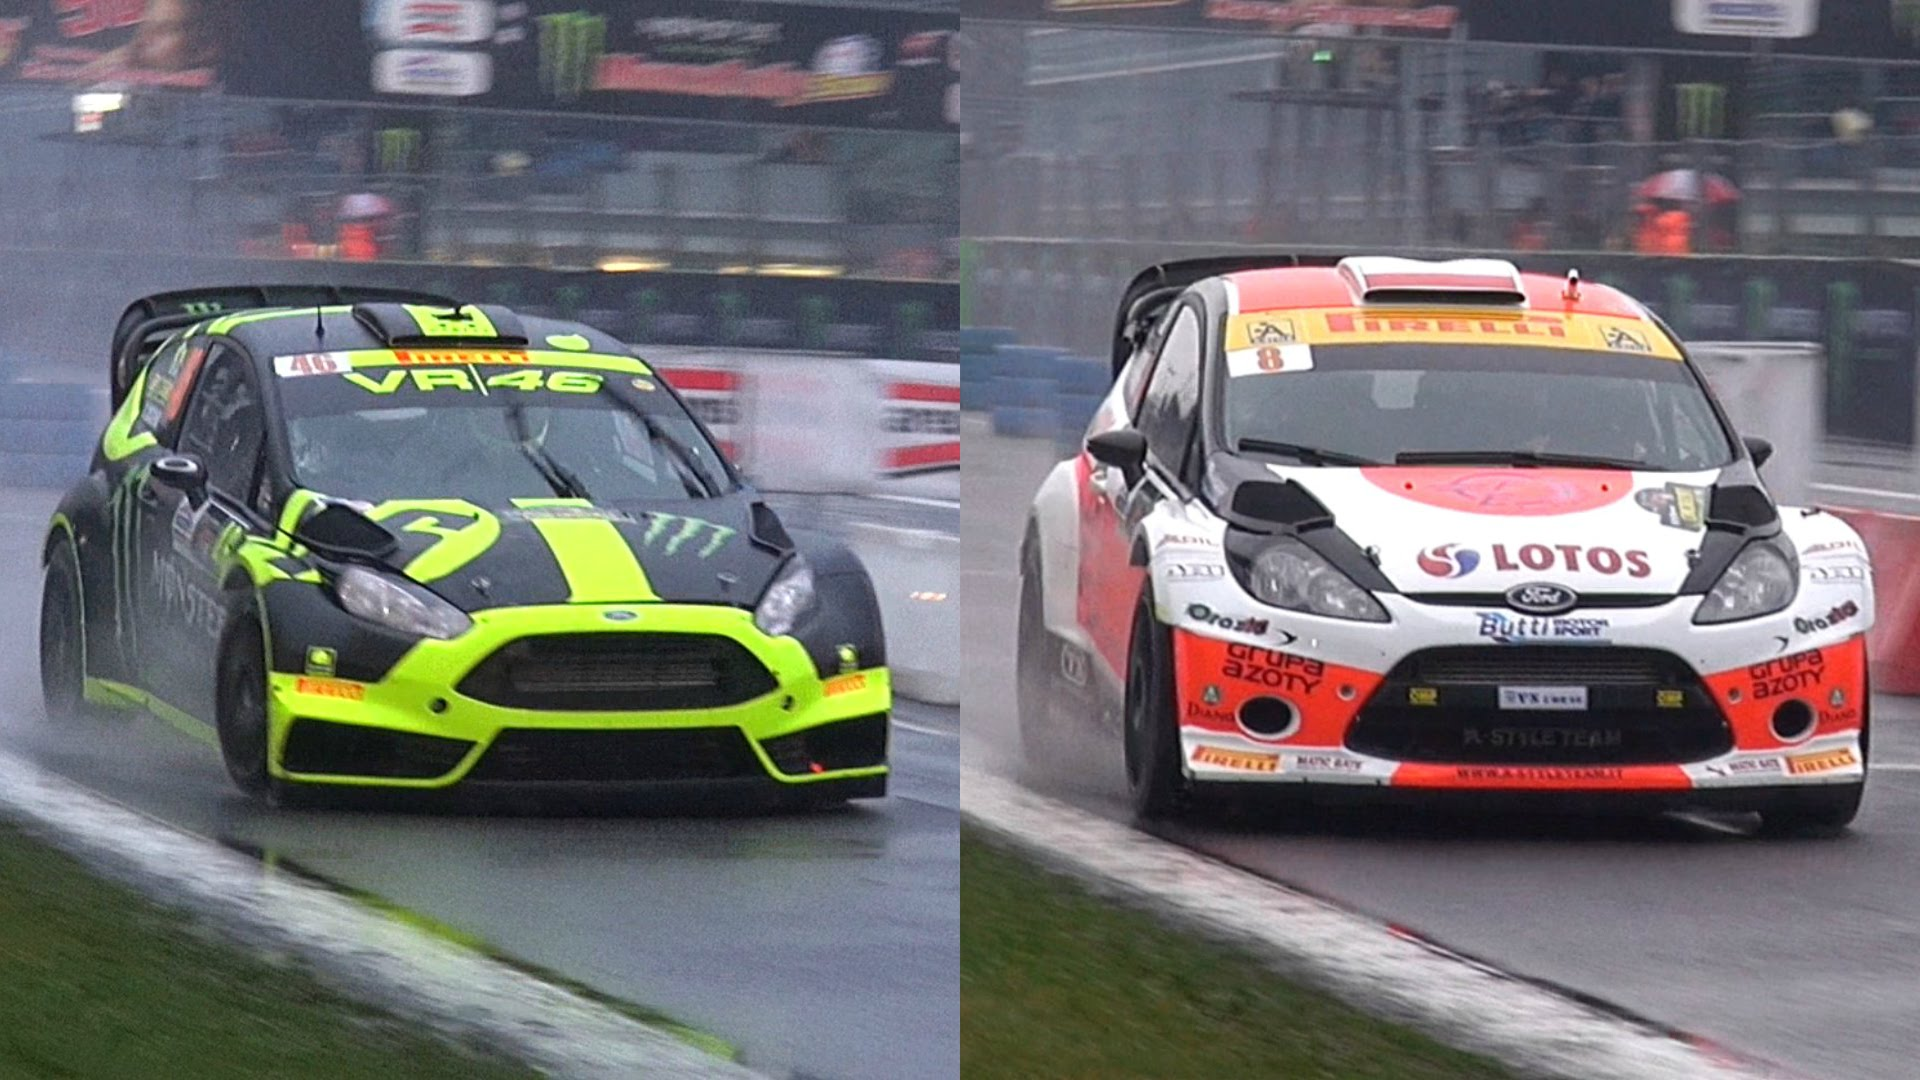 VALENTINO ROSSI Races Robert Kubica In A RALLY CAR!!!